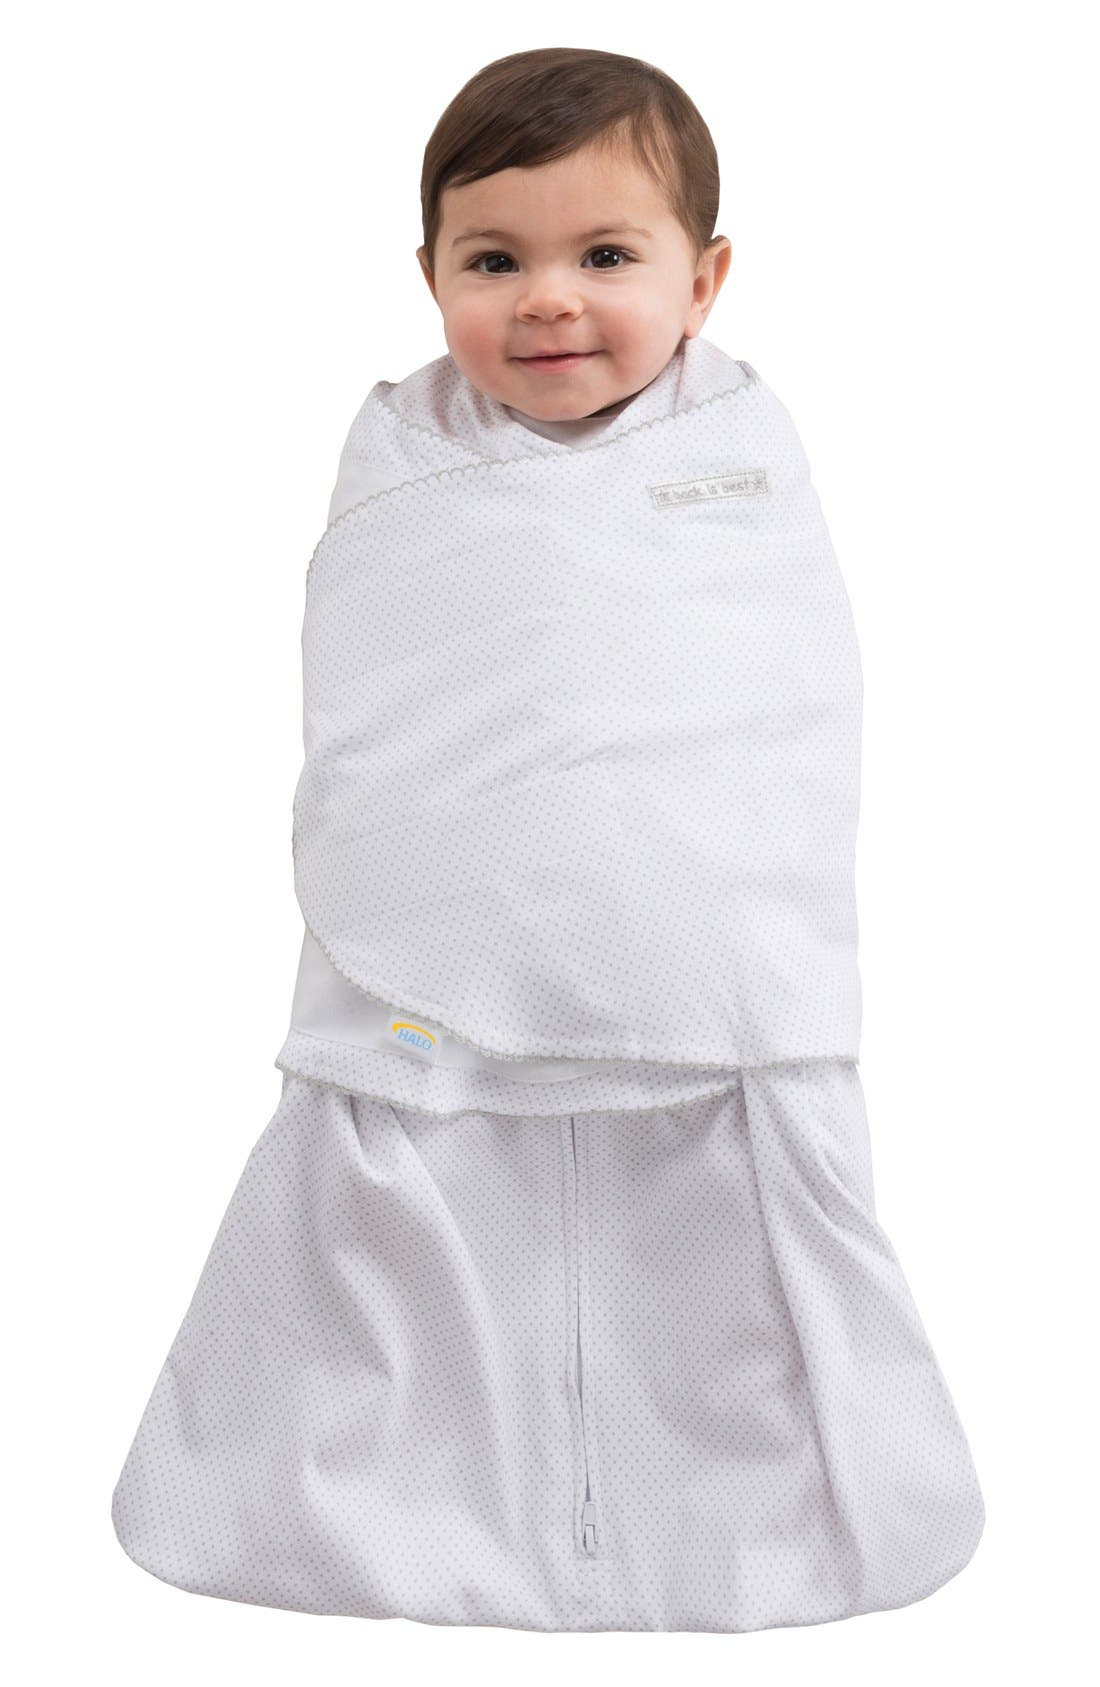 Alternate Image 1 Selected - Halo Innovations Wearable Swaddle Blanket (Baby)